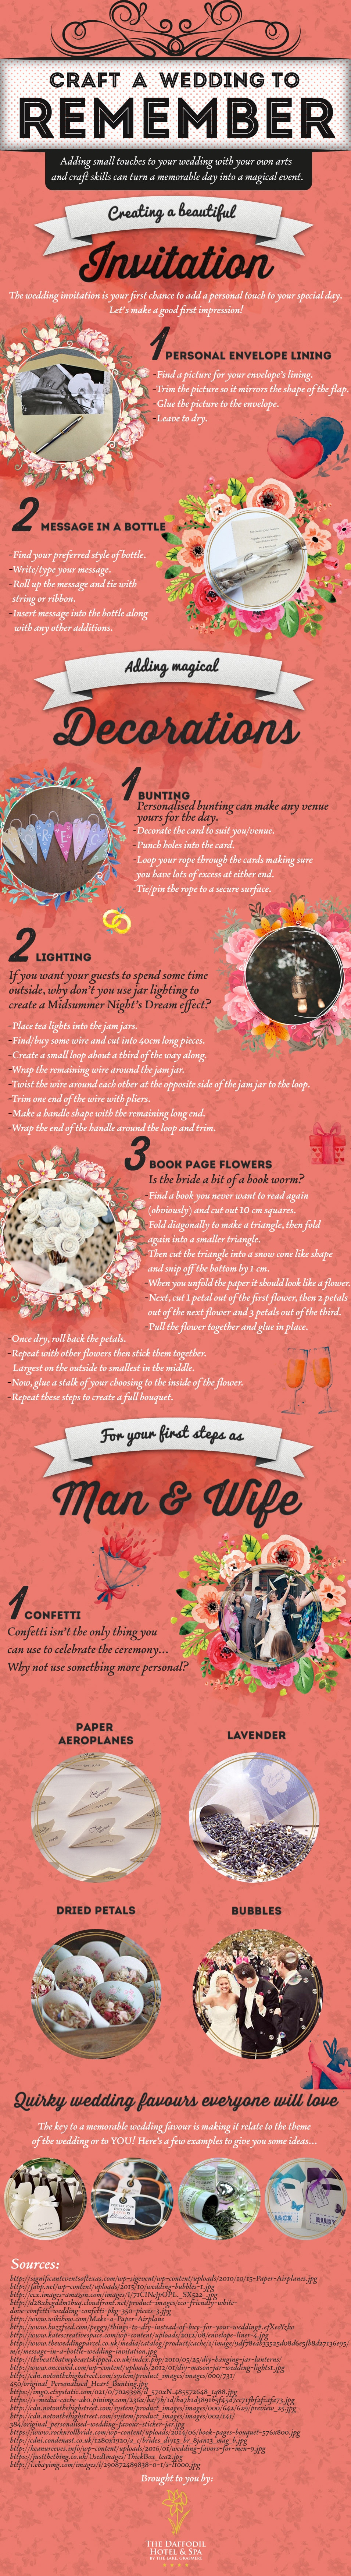 Craft A Wedding To Remember [Infographic]